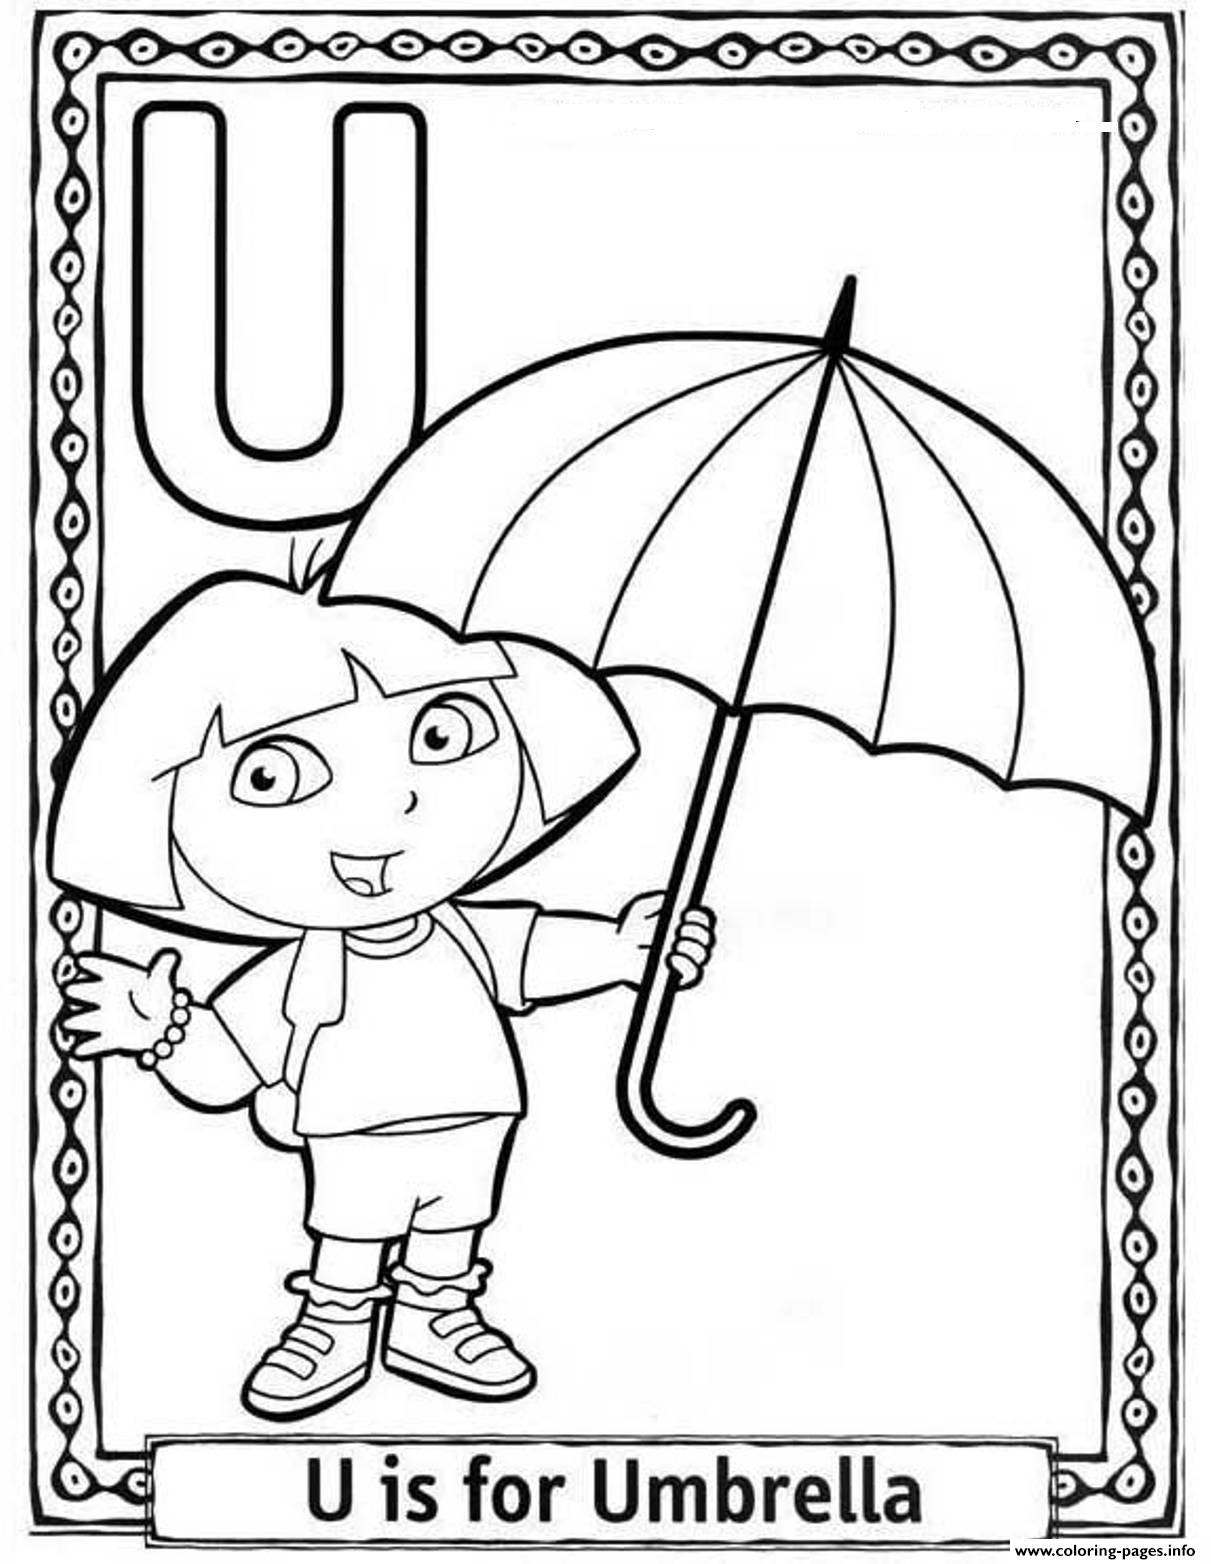 Dora Cartoon Alphabet S Free Umbrella2b65 Coloring Pages